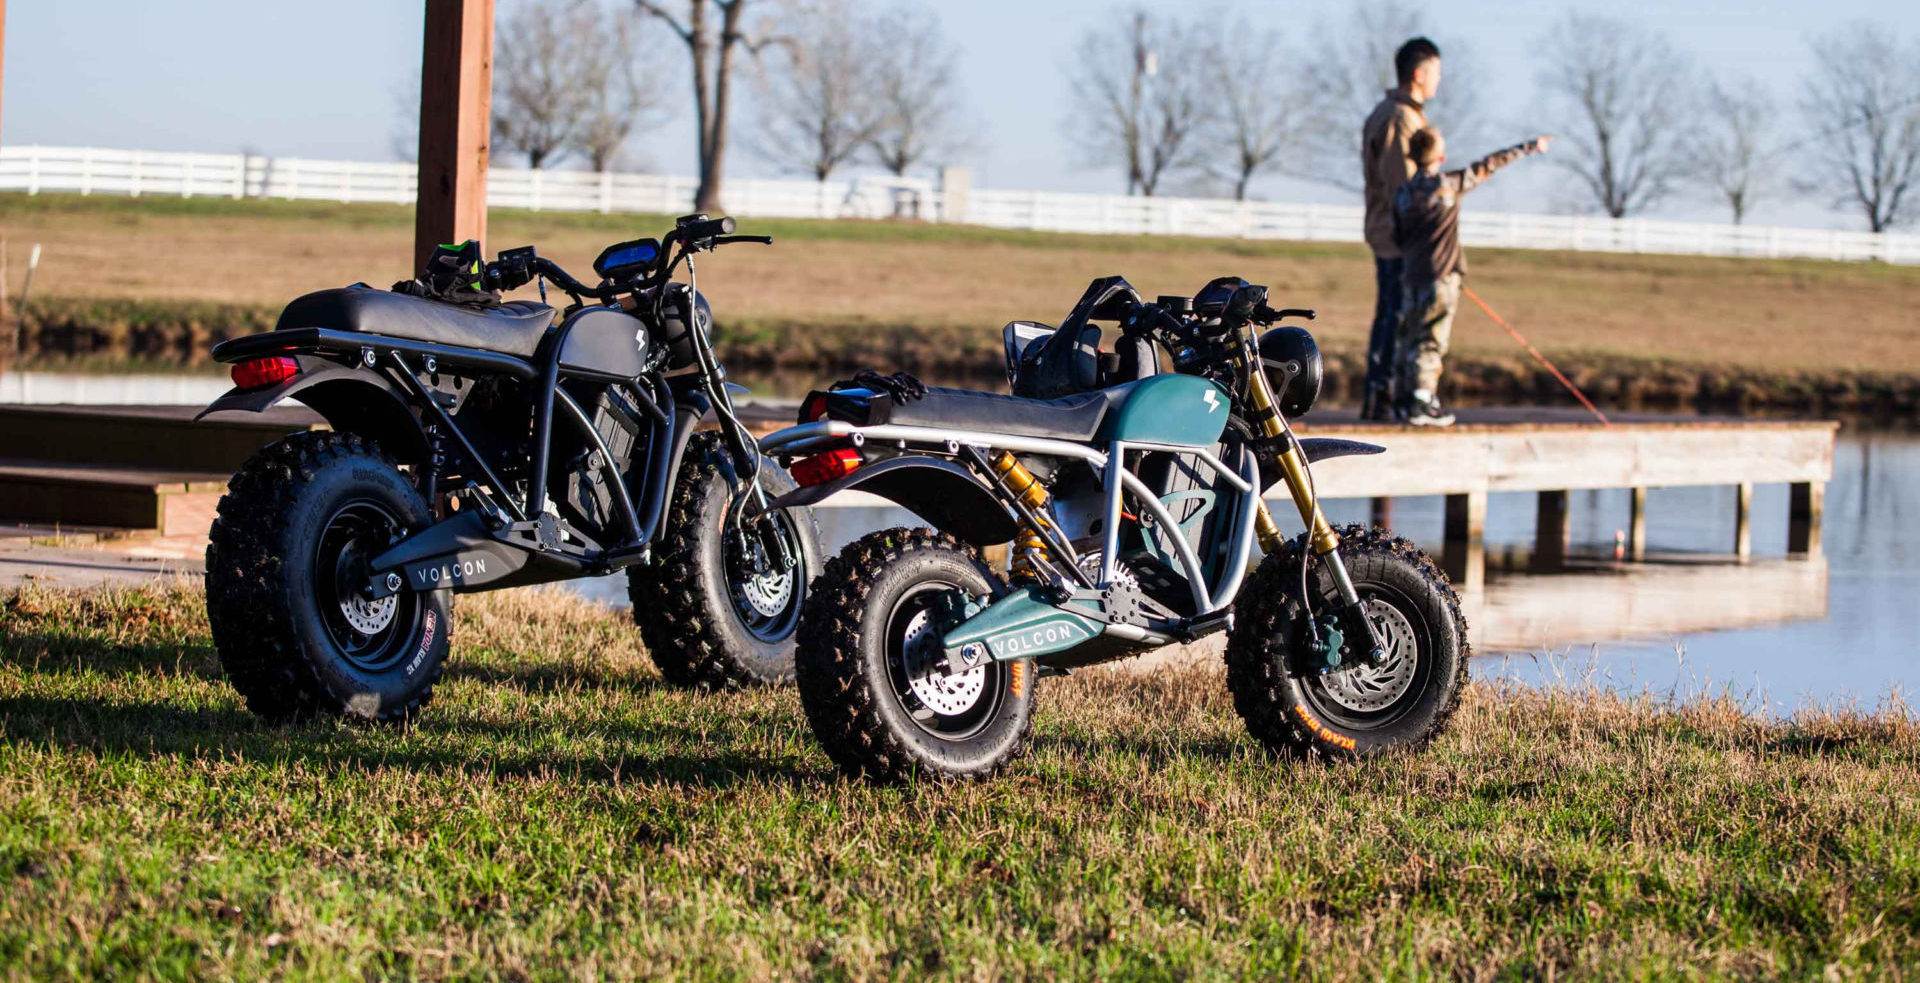 Volcon all-electric motorcycles, a Grunt (left) and the new youth model